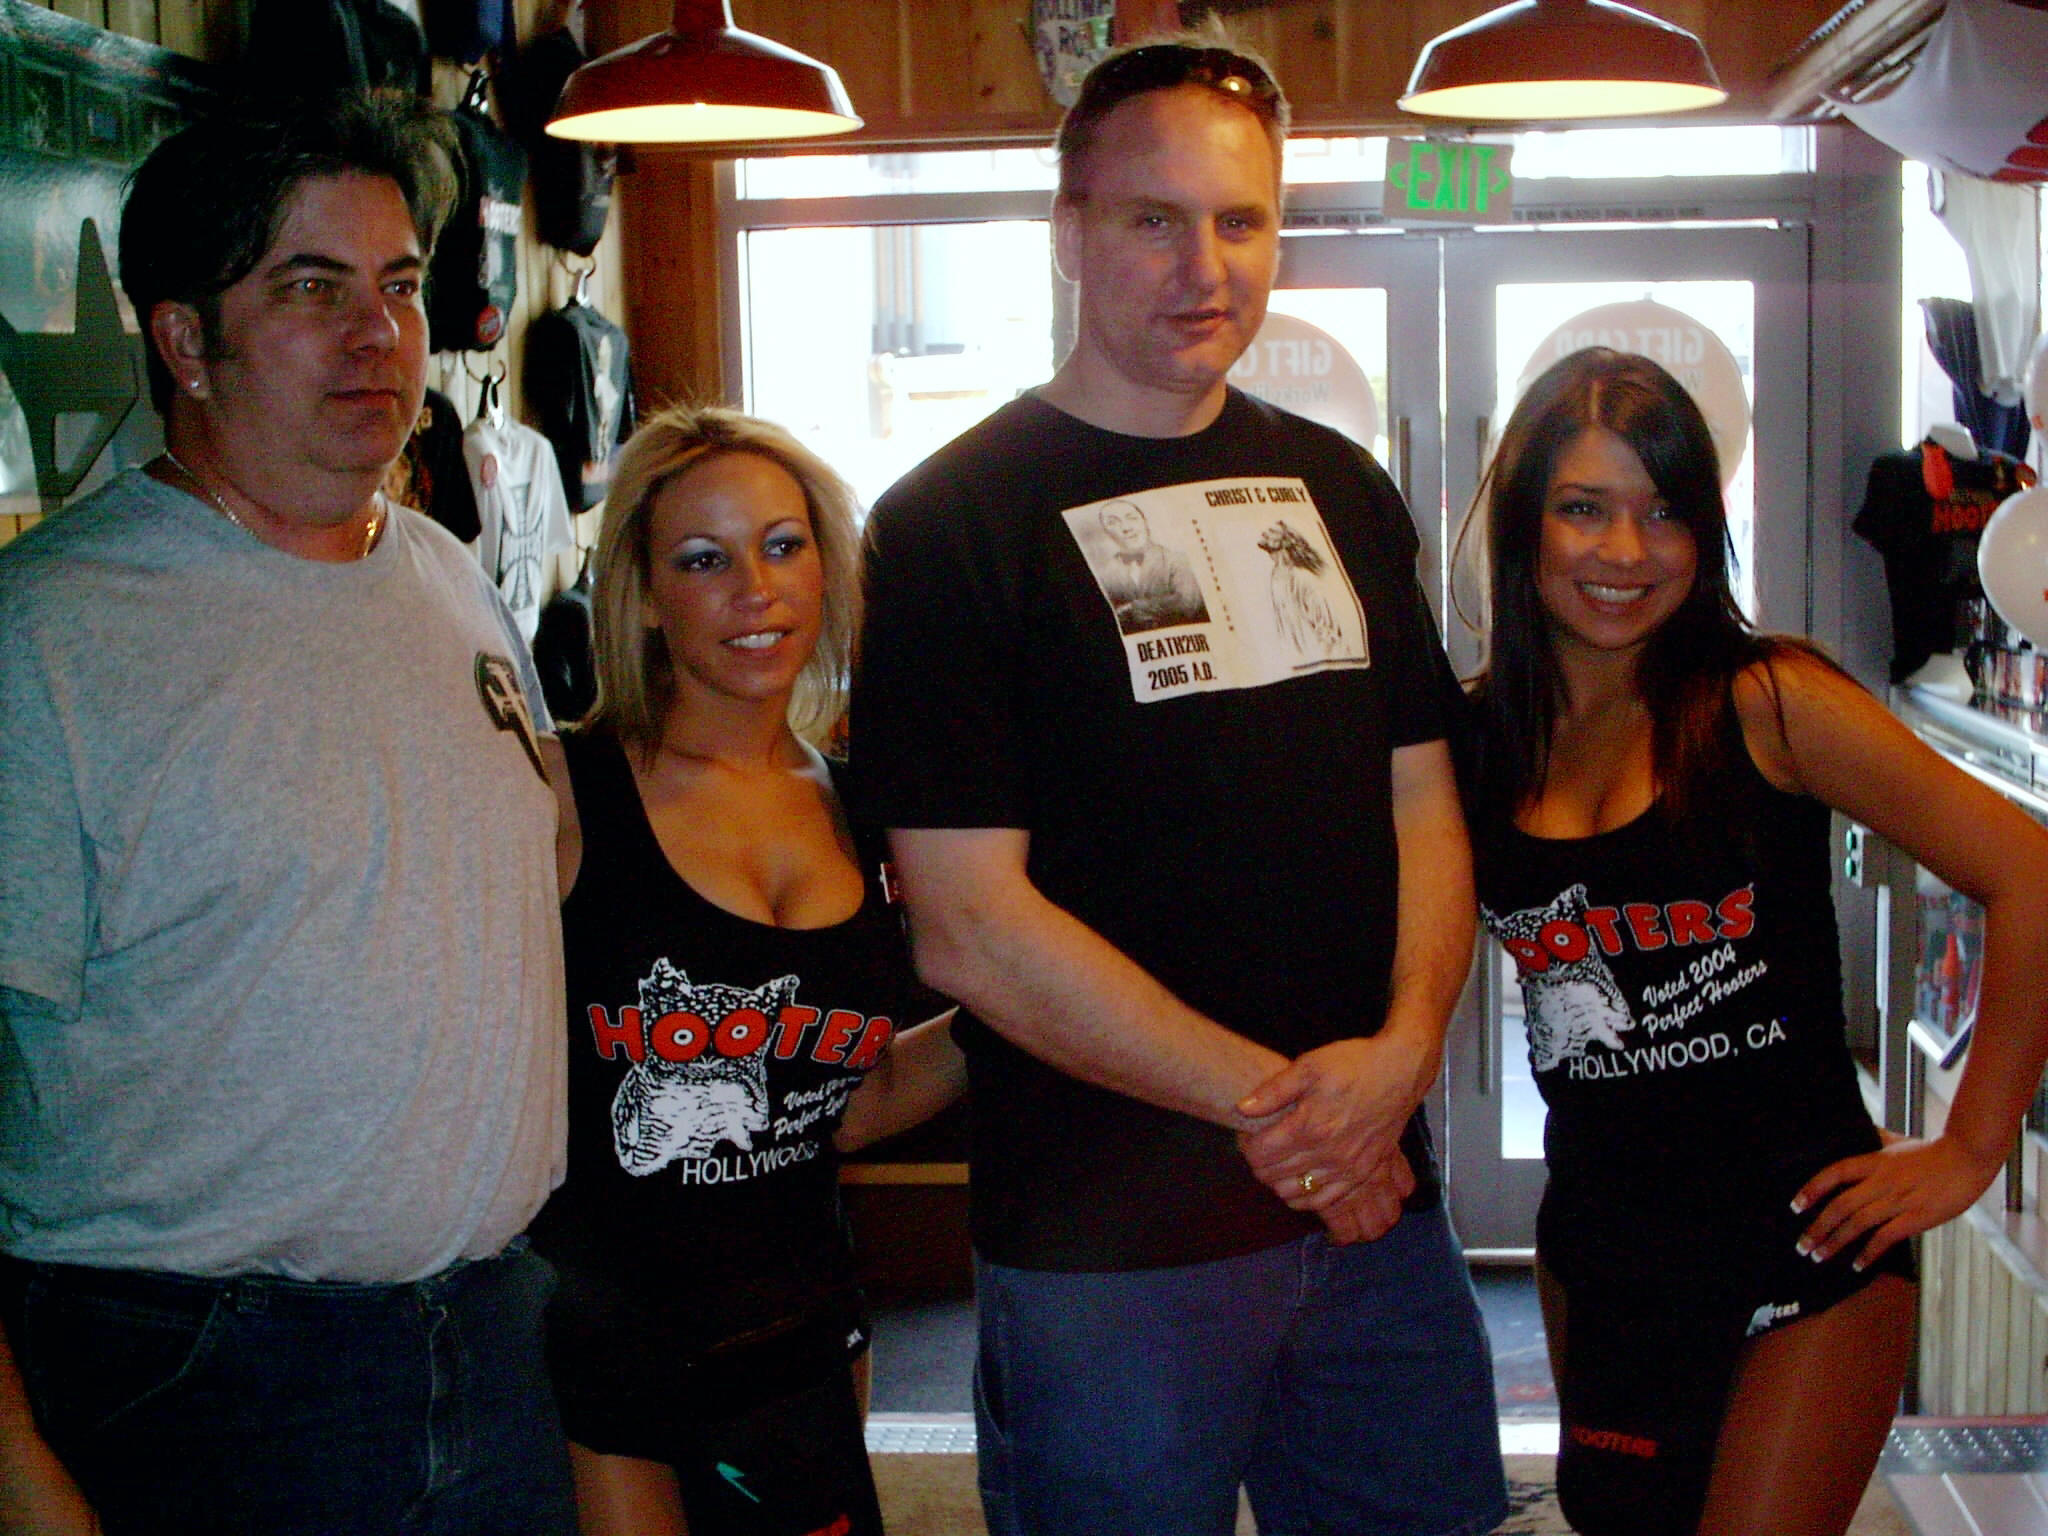 Todd and Paul with LA Hooters girls